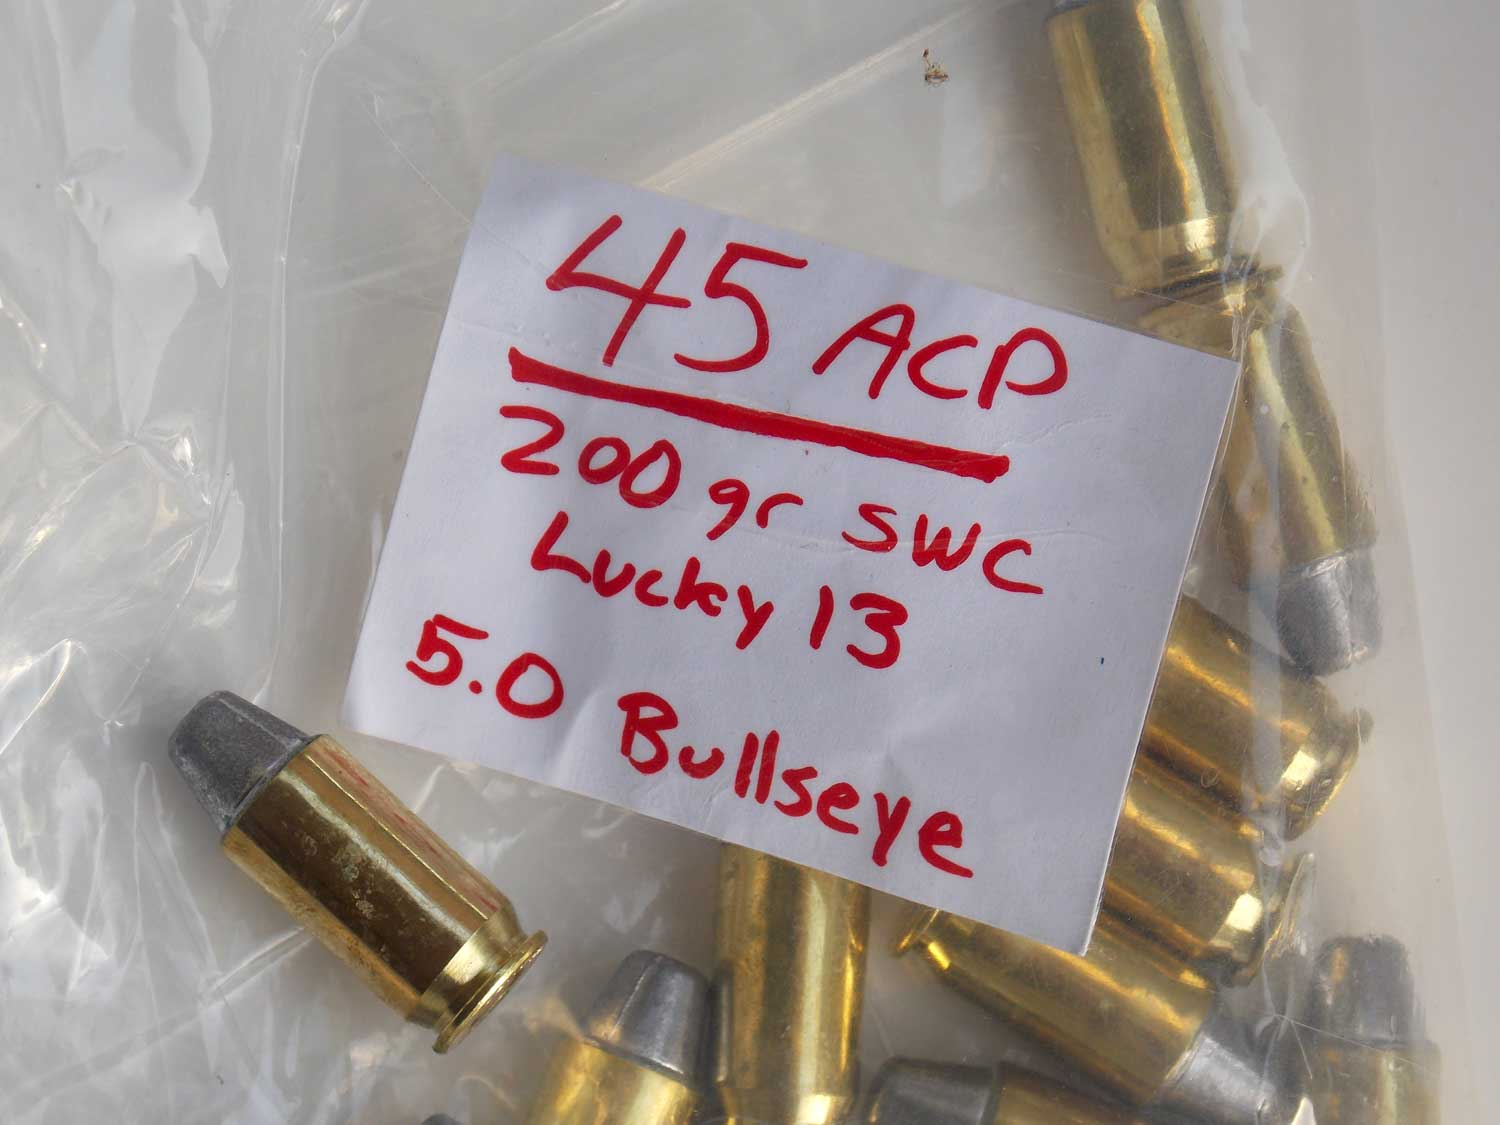 .45 ACP bullets in a plastic bag with red label